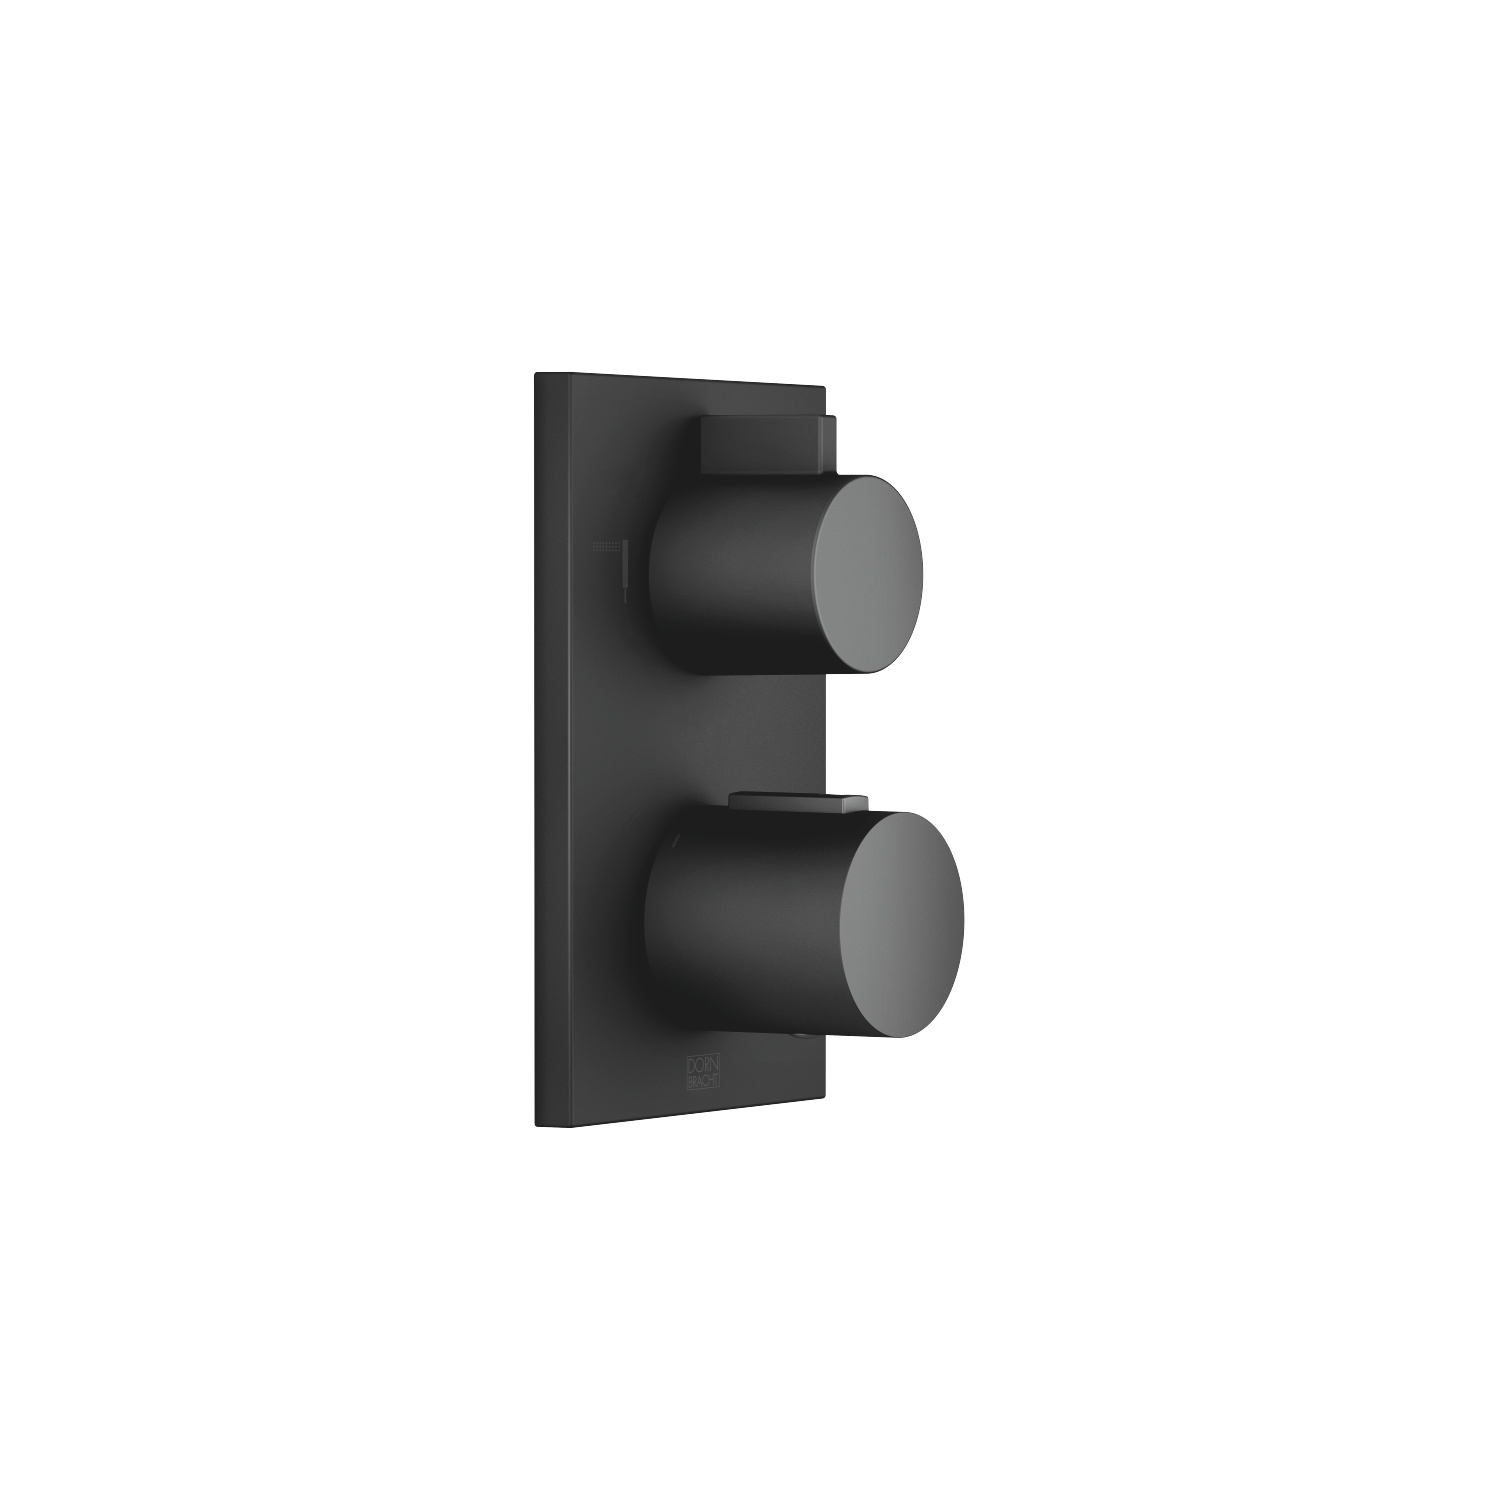 Concealed thermostat with two function volume control - matt black - 36 426 670-33